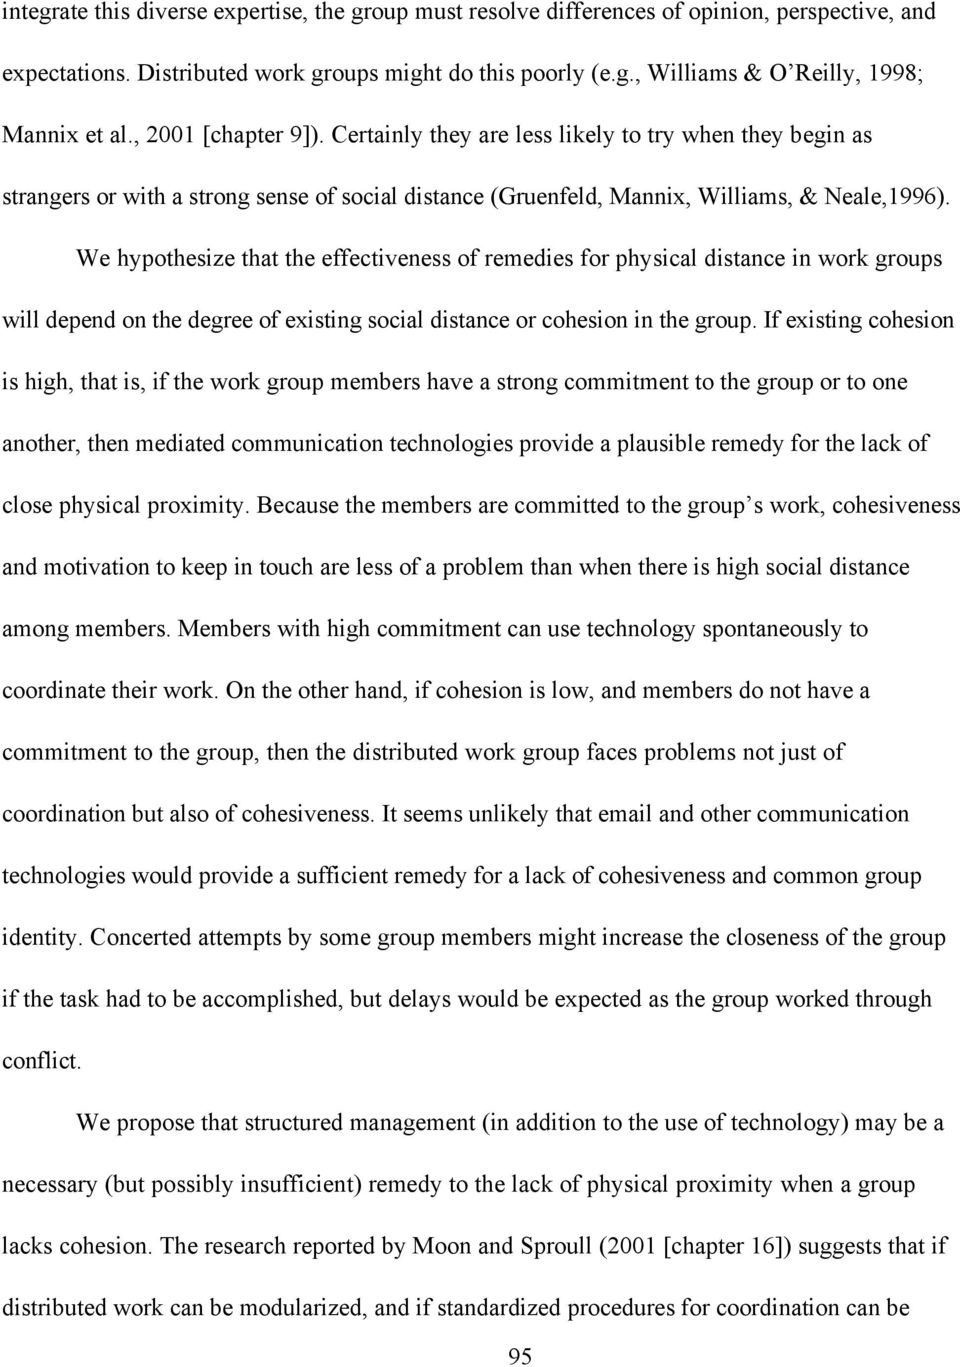 We hypothesize that the effectiveness of remedies for physical distance in work groups will depend on the degree of existing social distance or cohesion in the group.